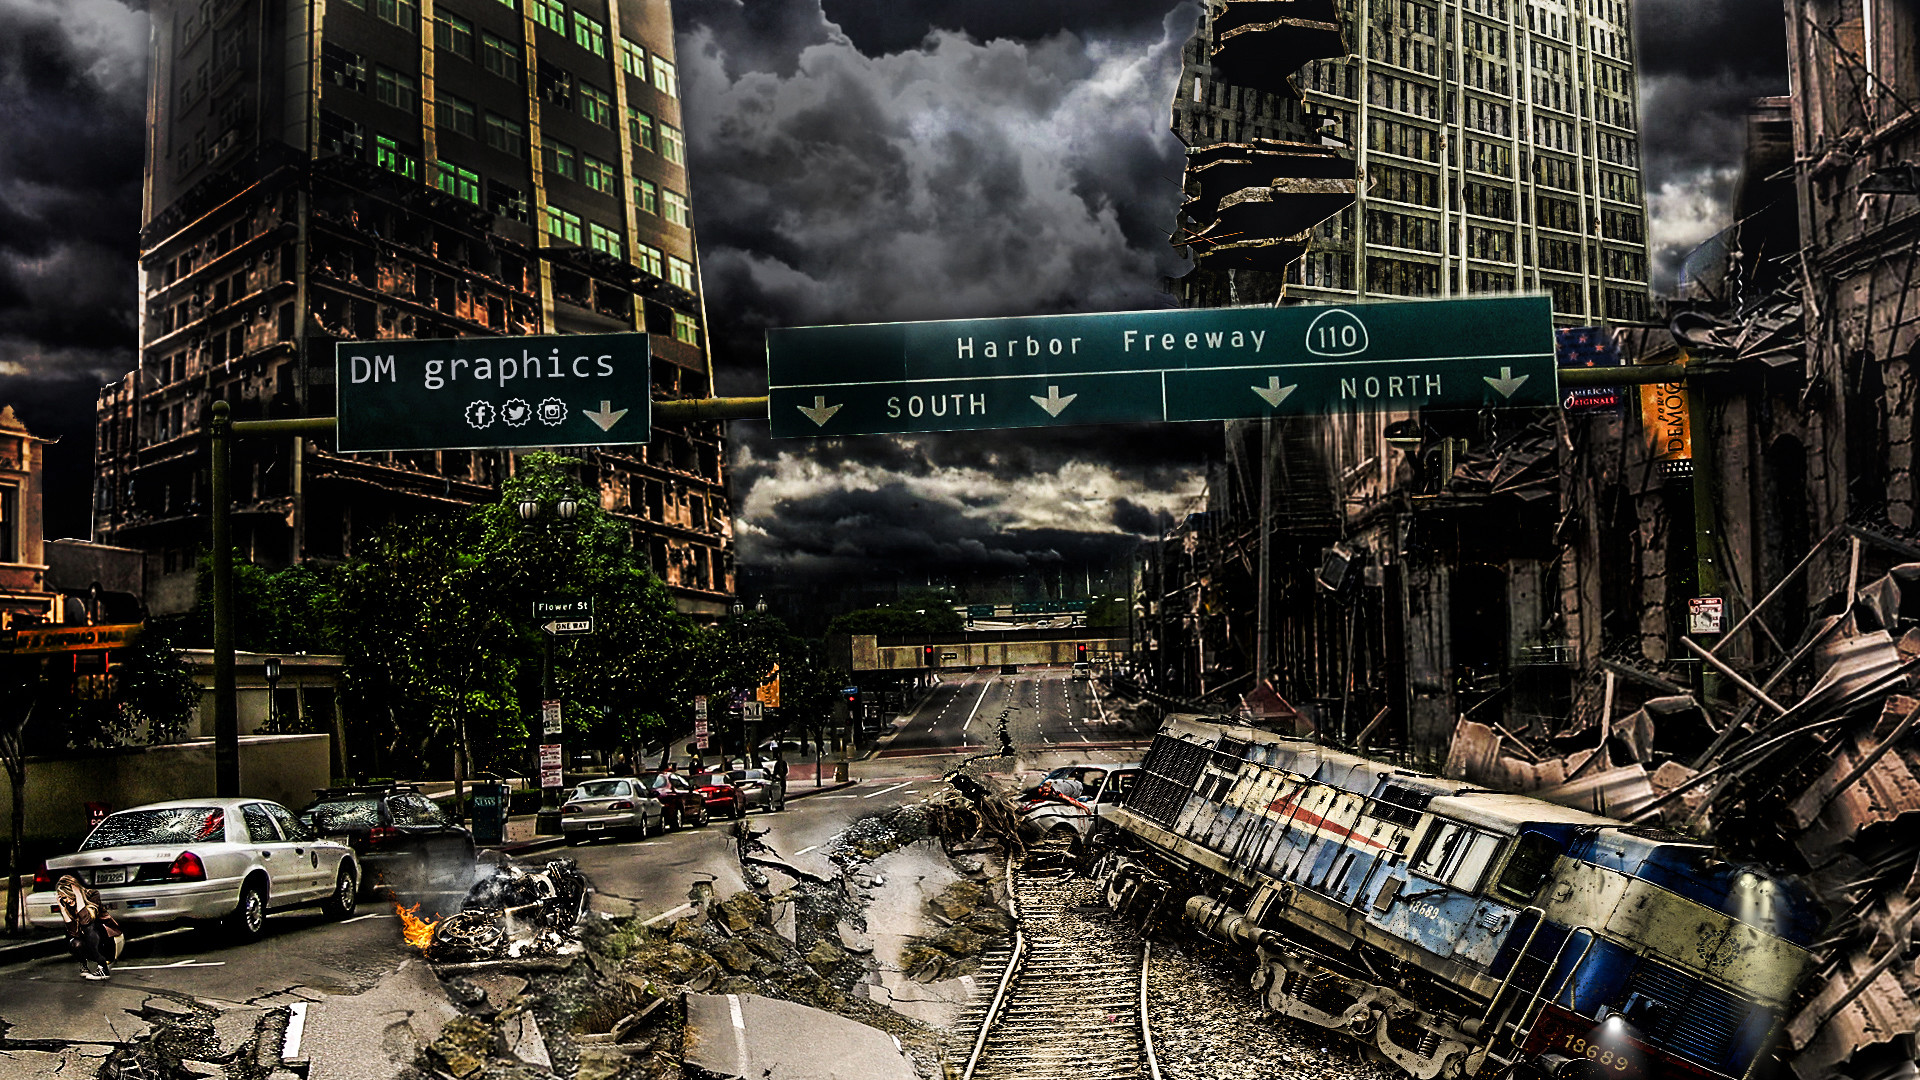 Destroyed City by DoubleMpics Destroyed City by DoubleMpics